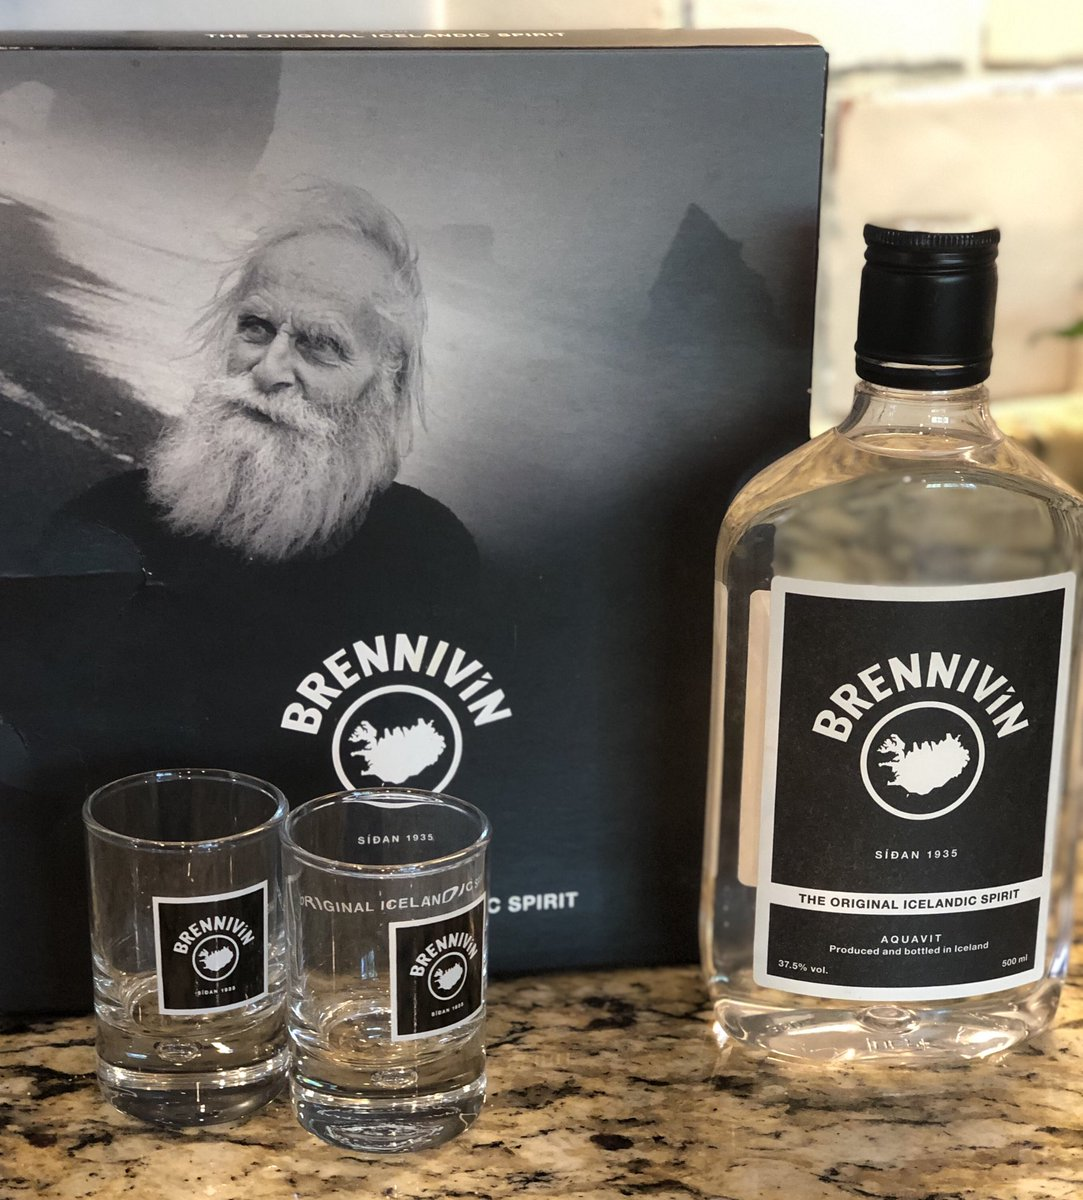 Impulse purchase the last time I went through the duty free shop leaving Iceland. No clue about whether/how to drink it. Any ideas?